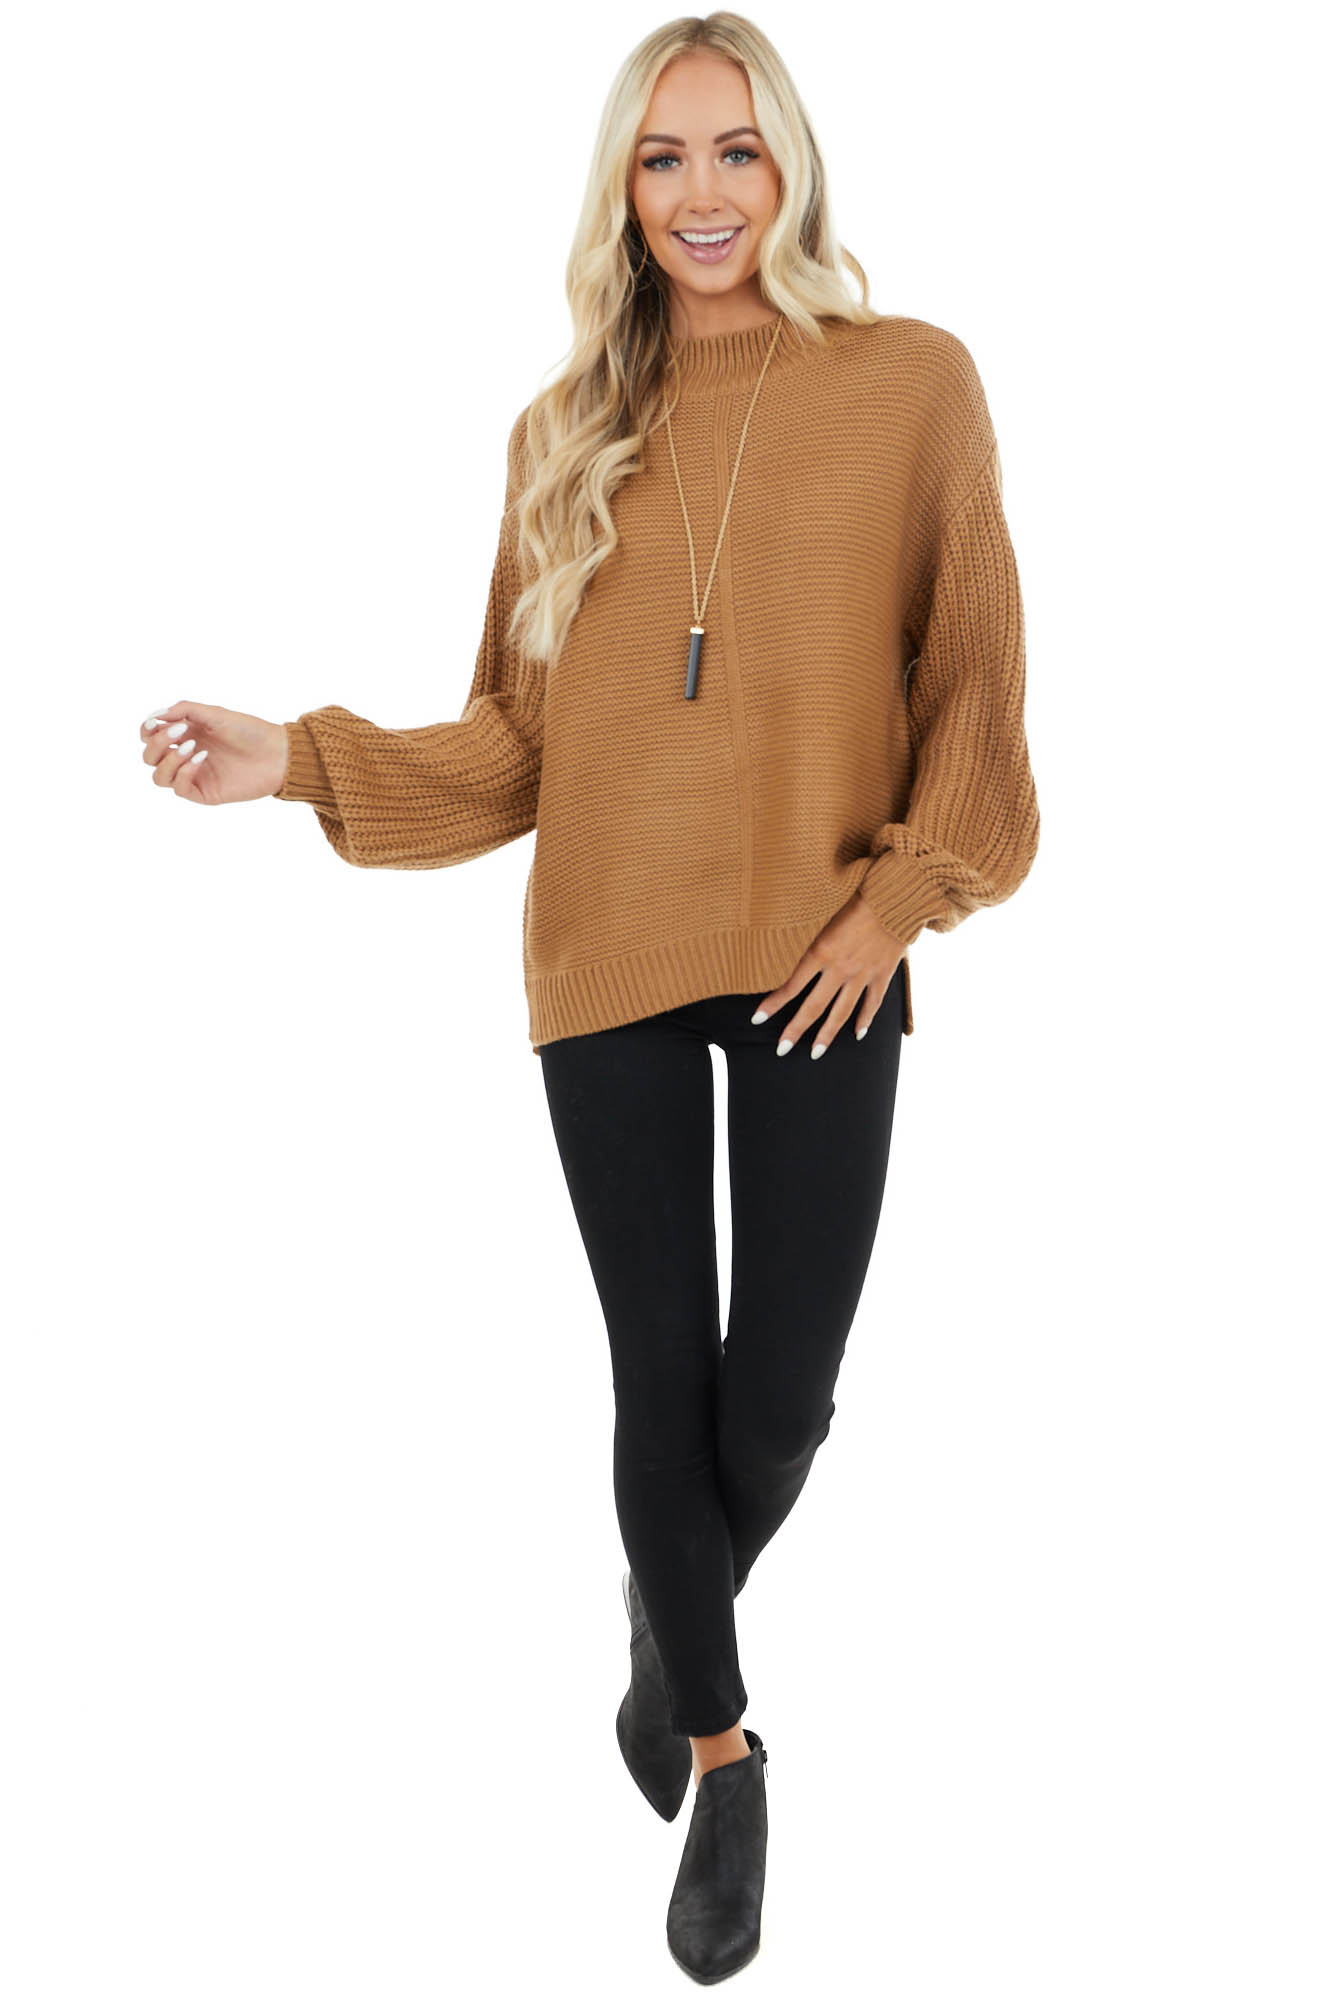 Camel Mock Neck Sweater with Thick Knit Puff Sleeves